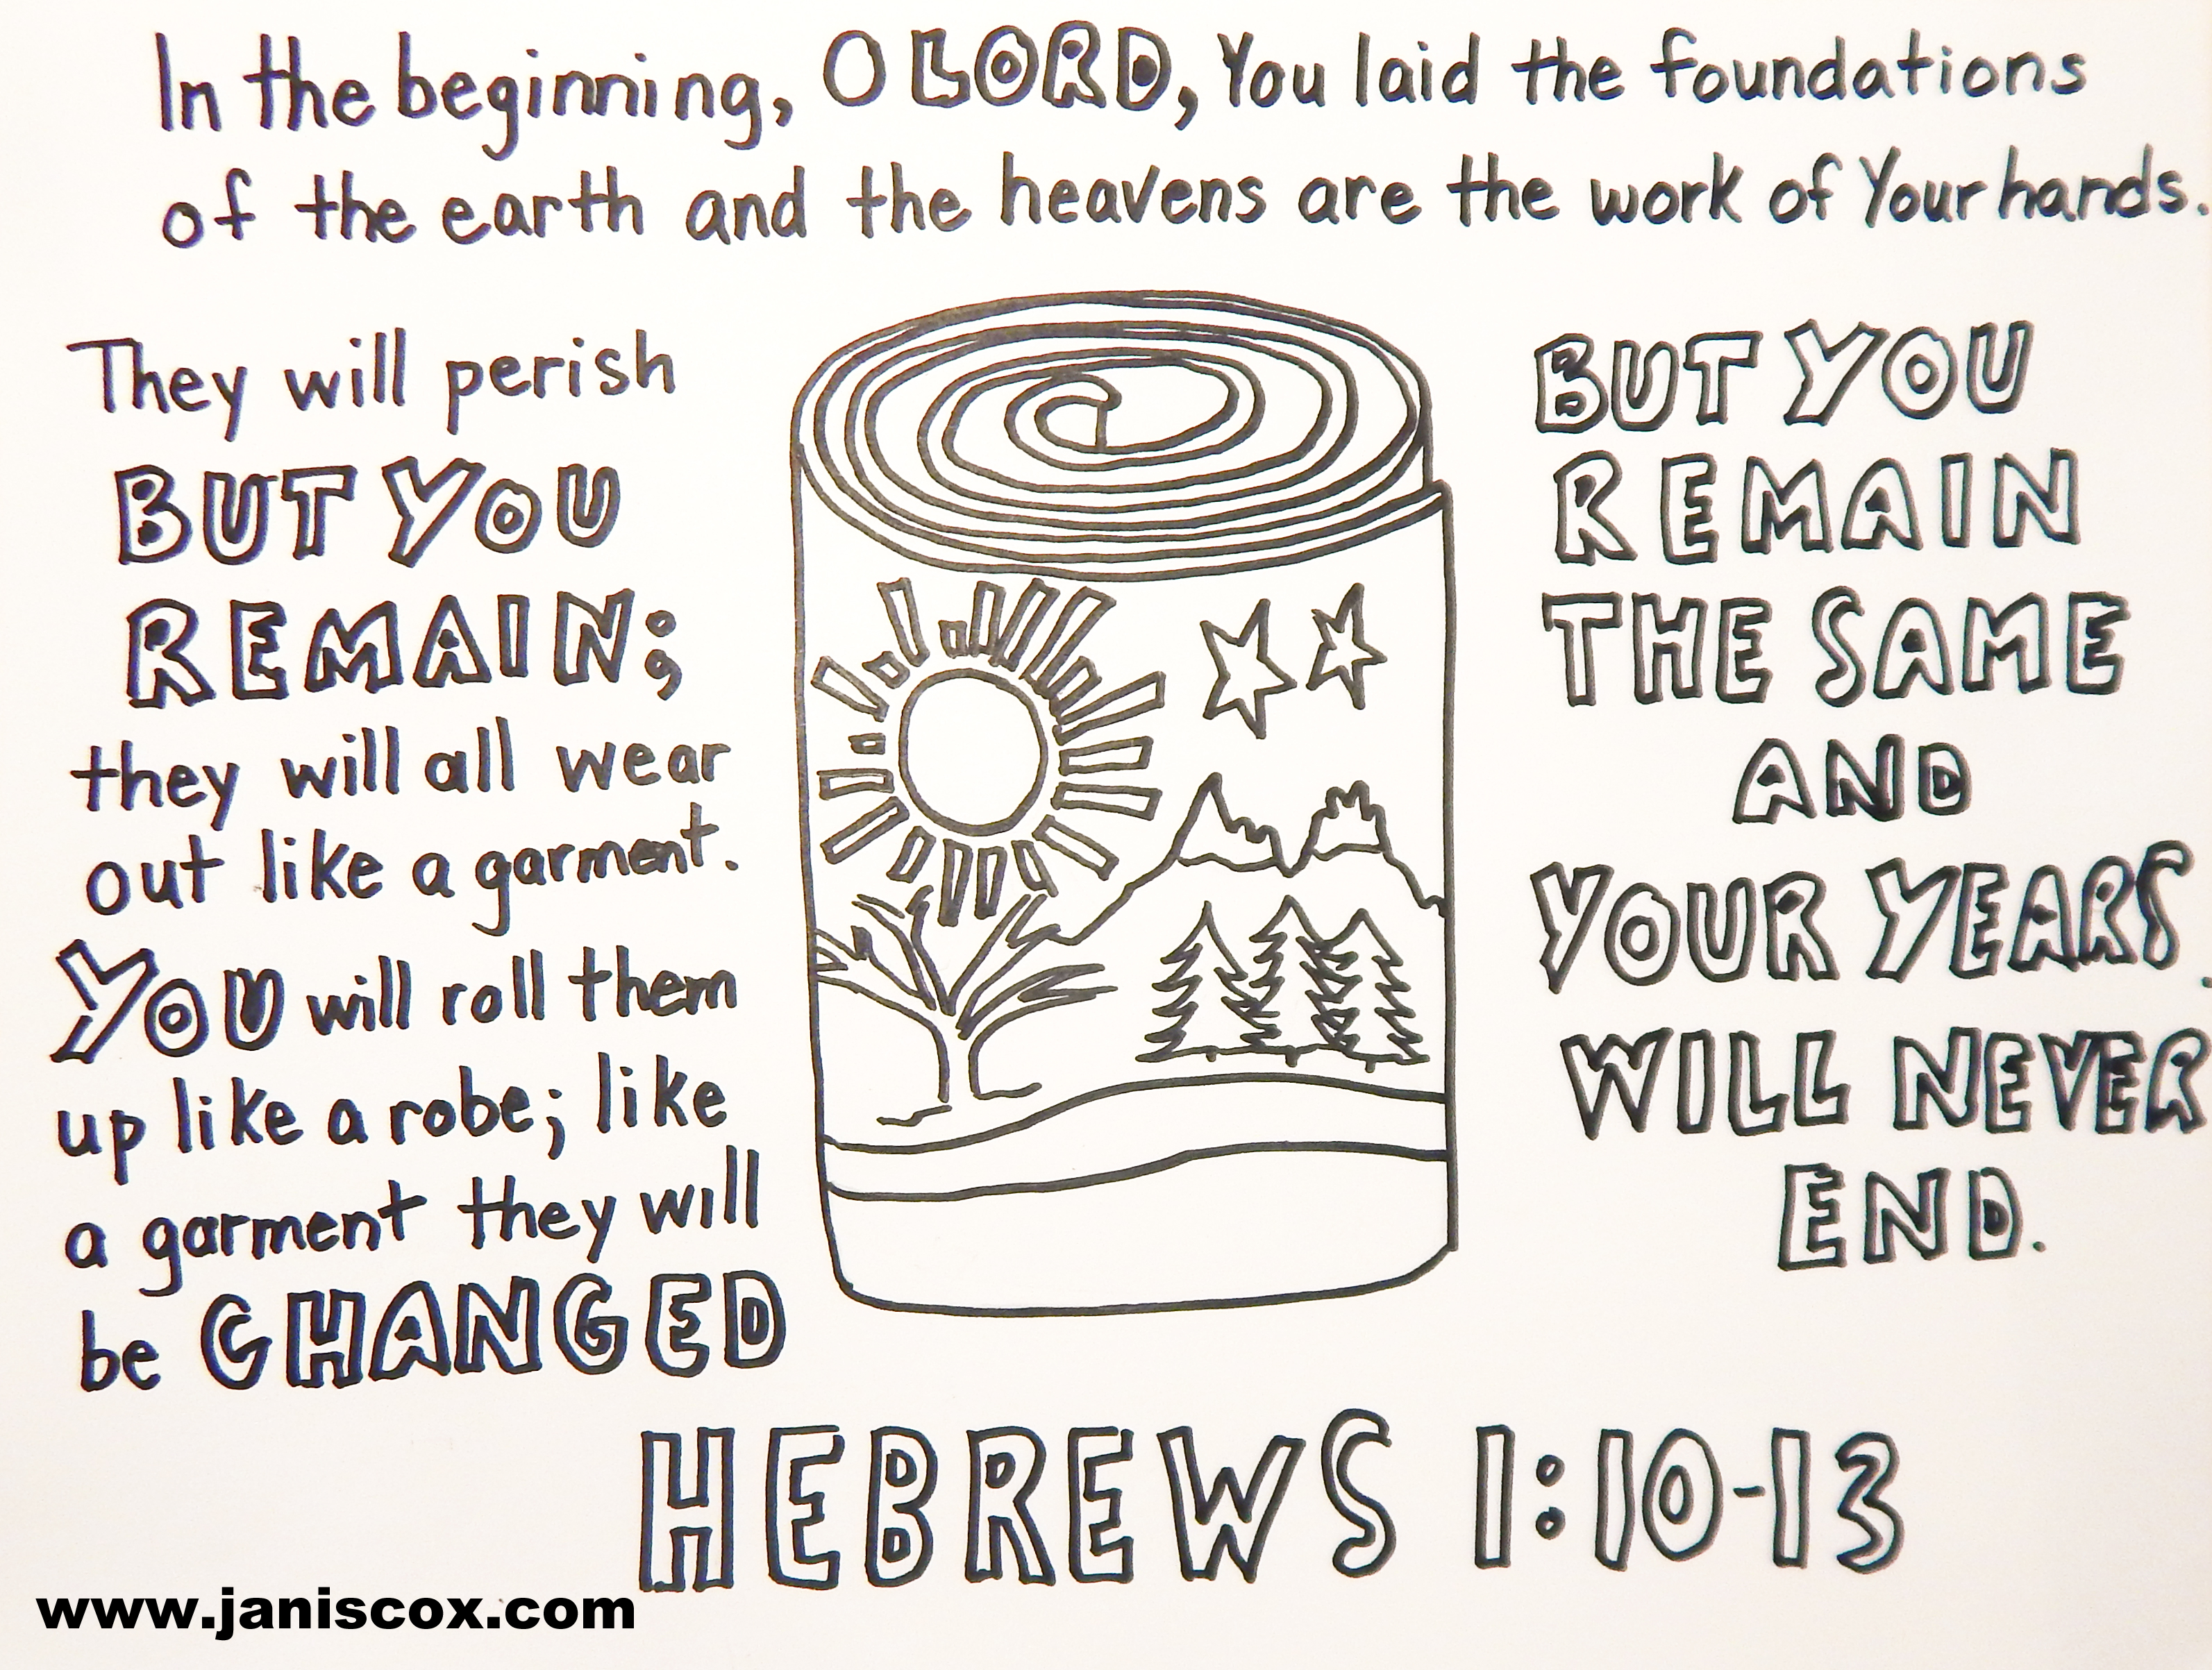 Hebrews 1:10-13